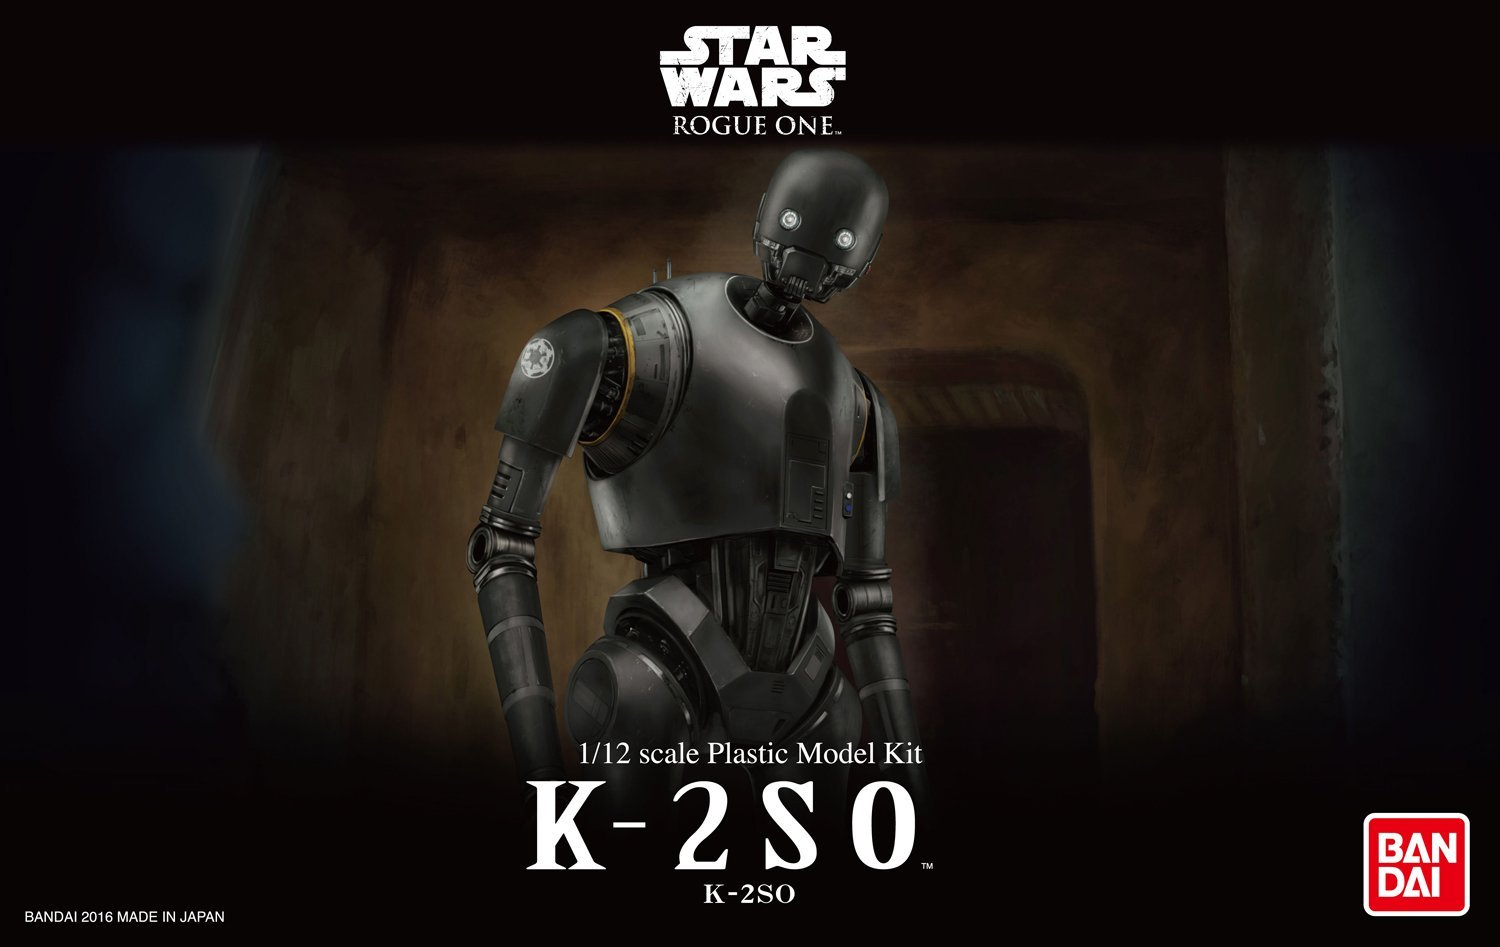 Bandai Star Wars K-2SO 1/12 scale Plastic Model rogue one